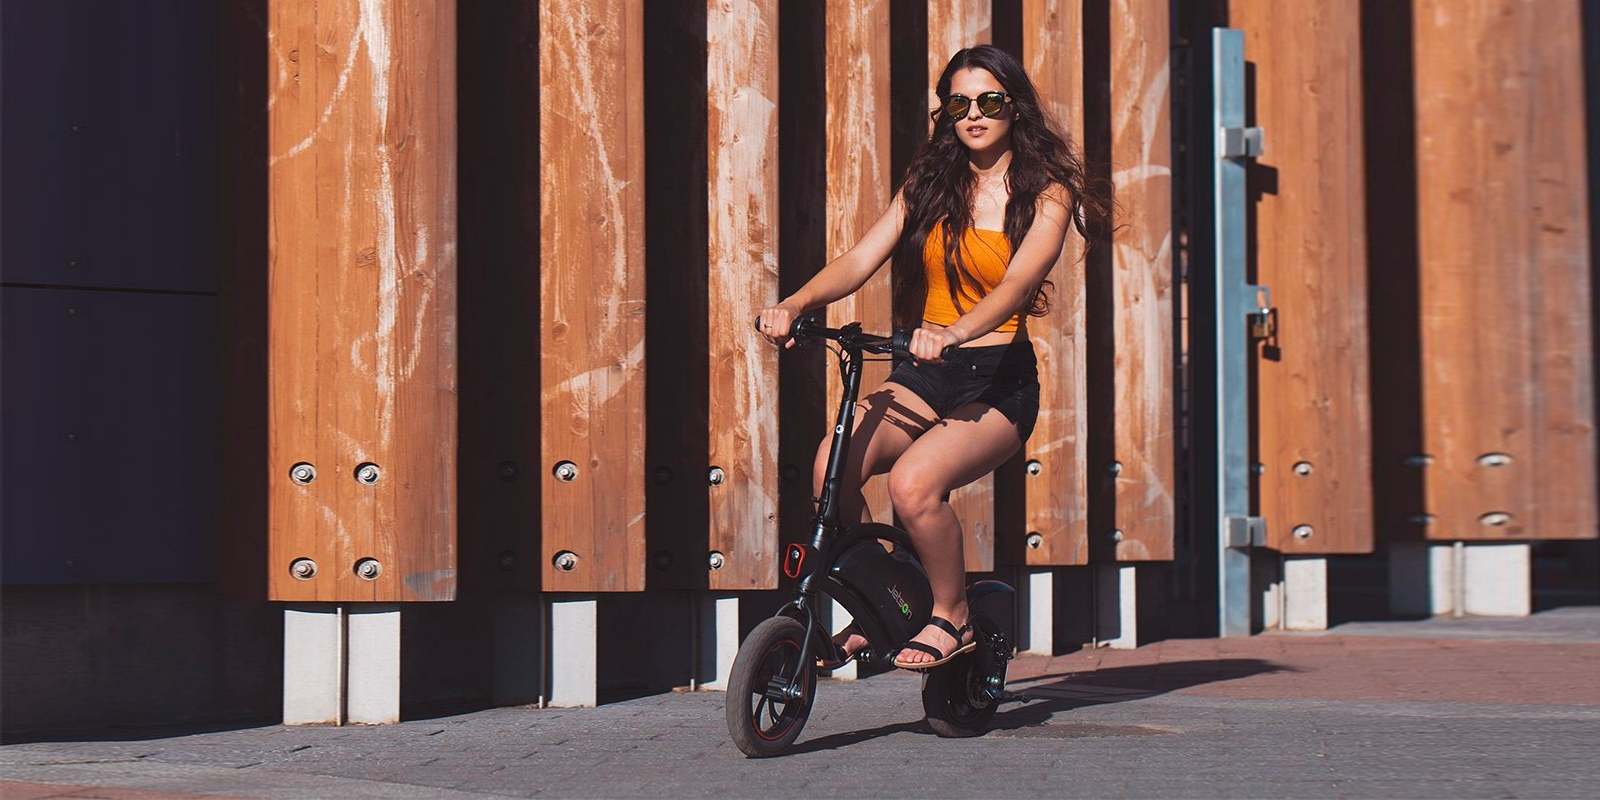 Electrek review: The Jetson Bolt electric bicycle is a $399 steal of a deal